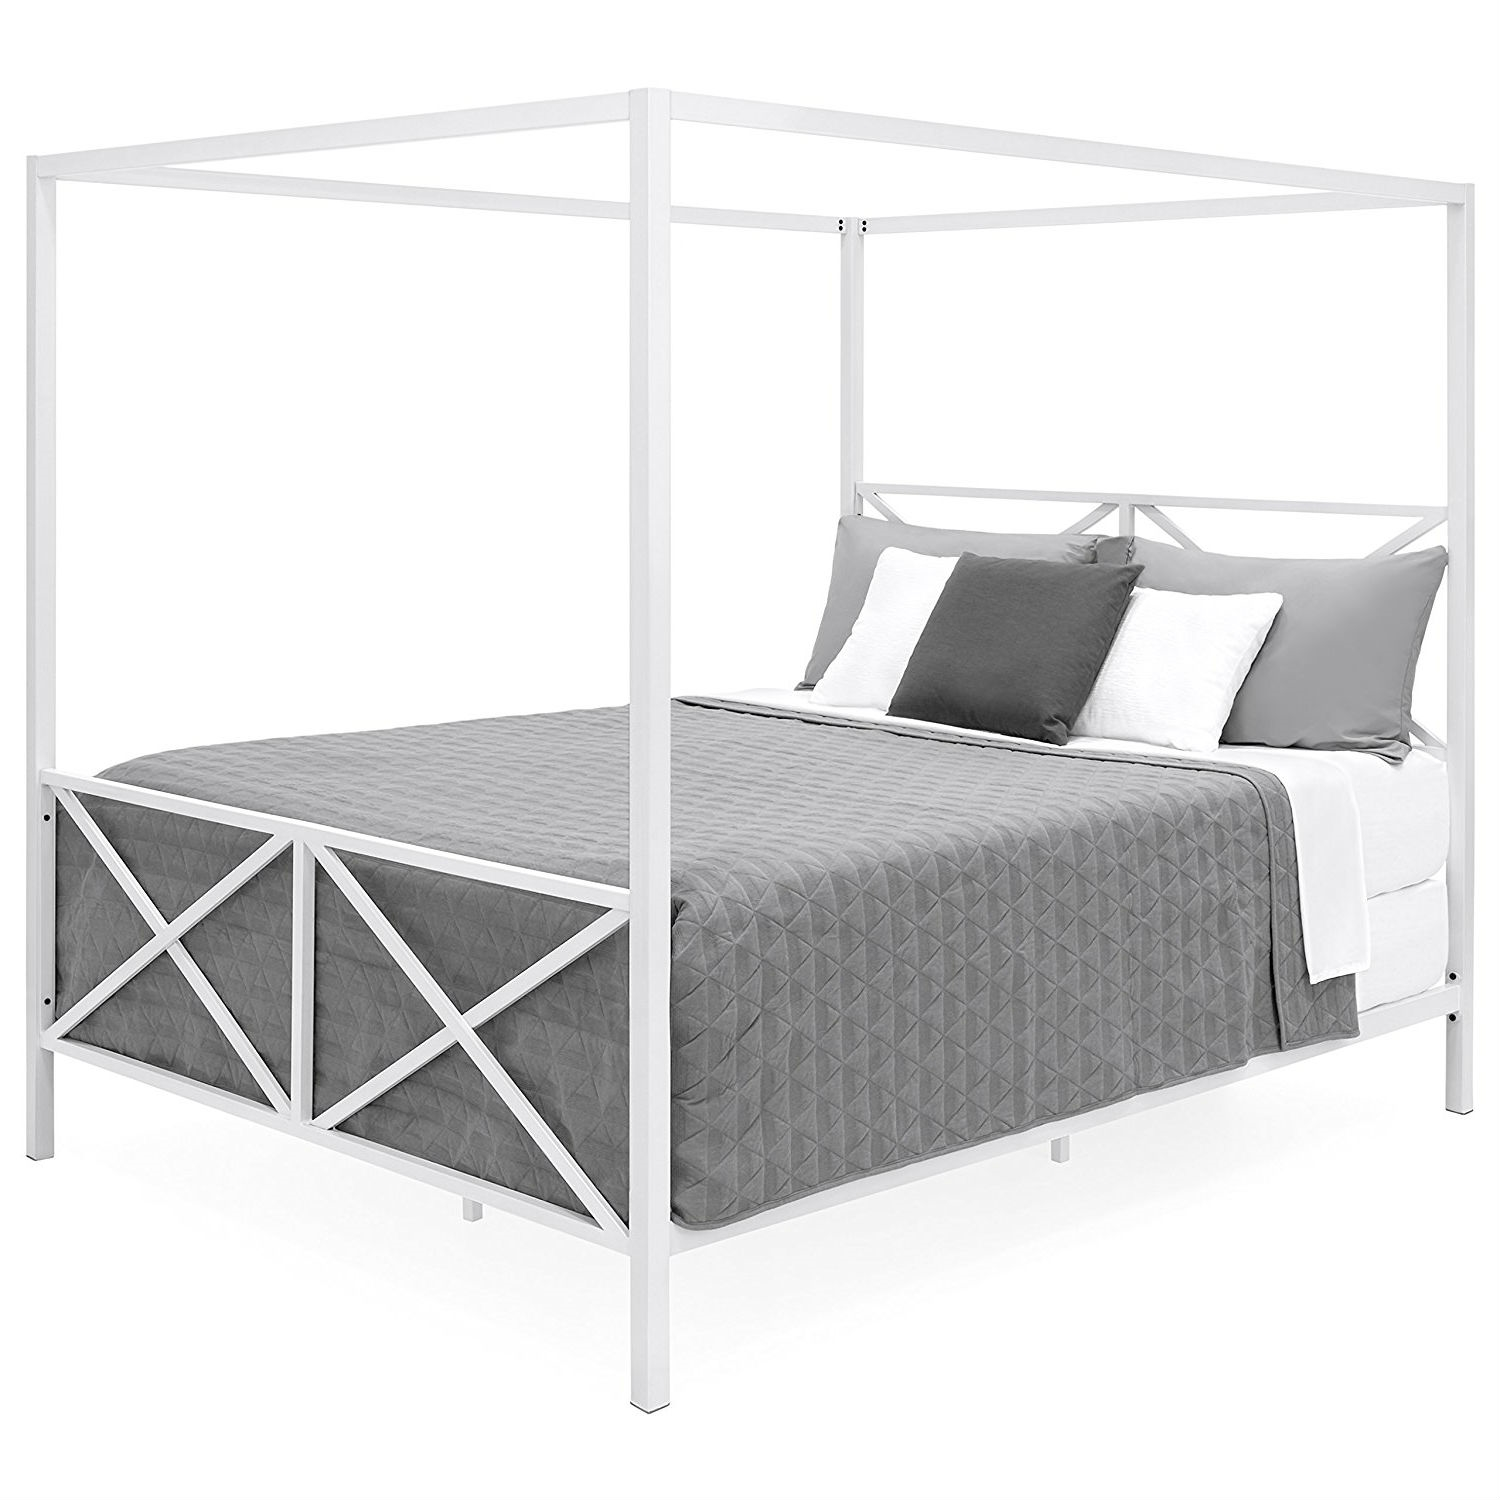 Queen size Modern Canopy Bed Frame in White Metal Finish ...